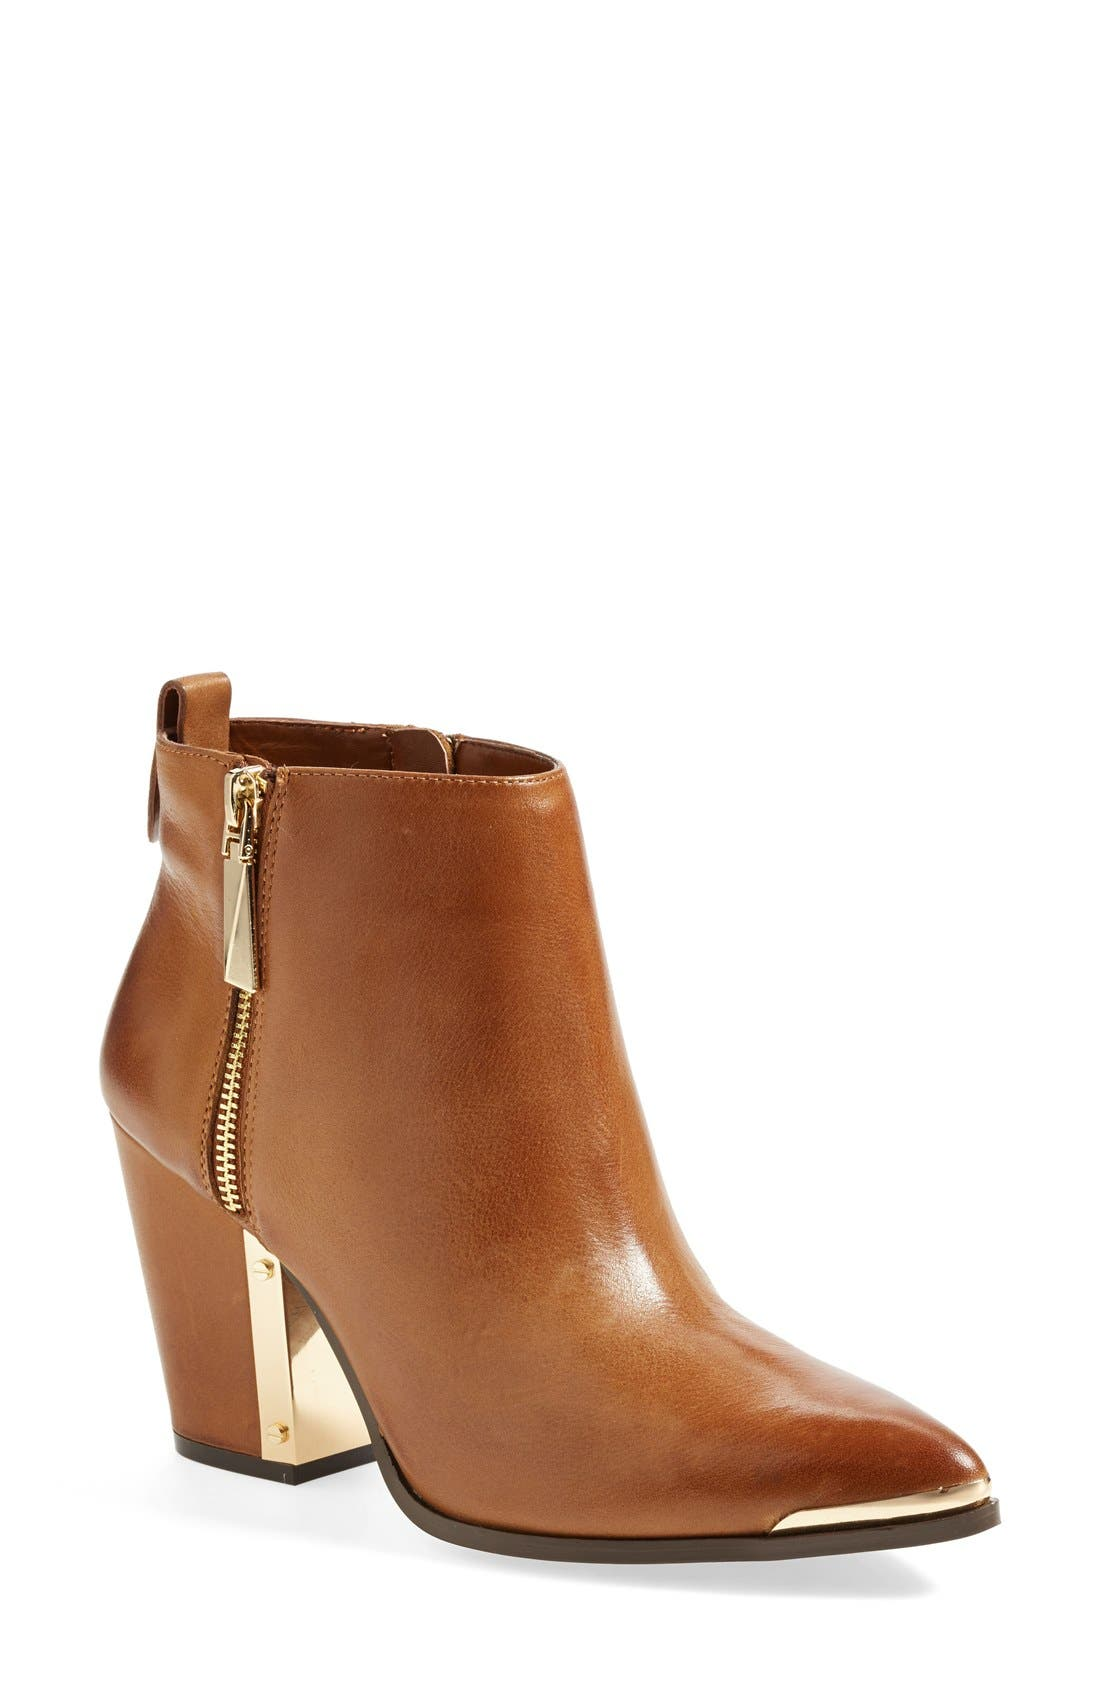 Main Image - Vince Camuto 'Amori' Pointy Toe Leather Bootie (Women)